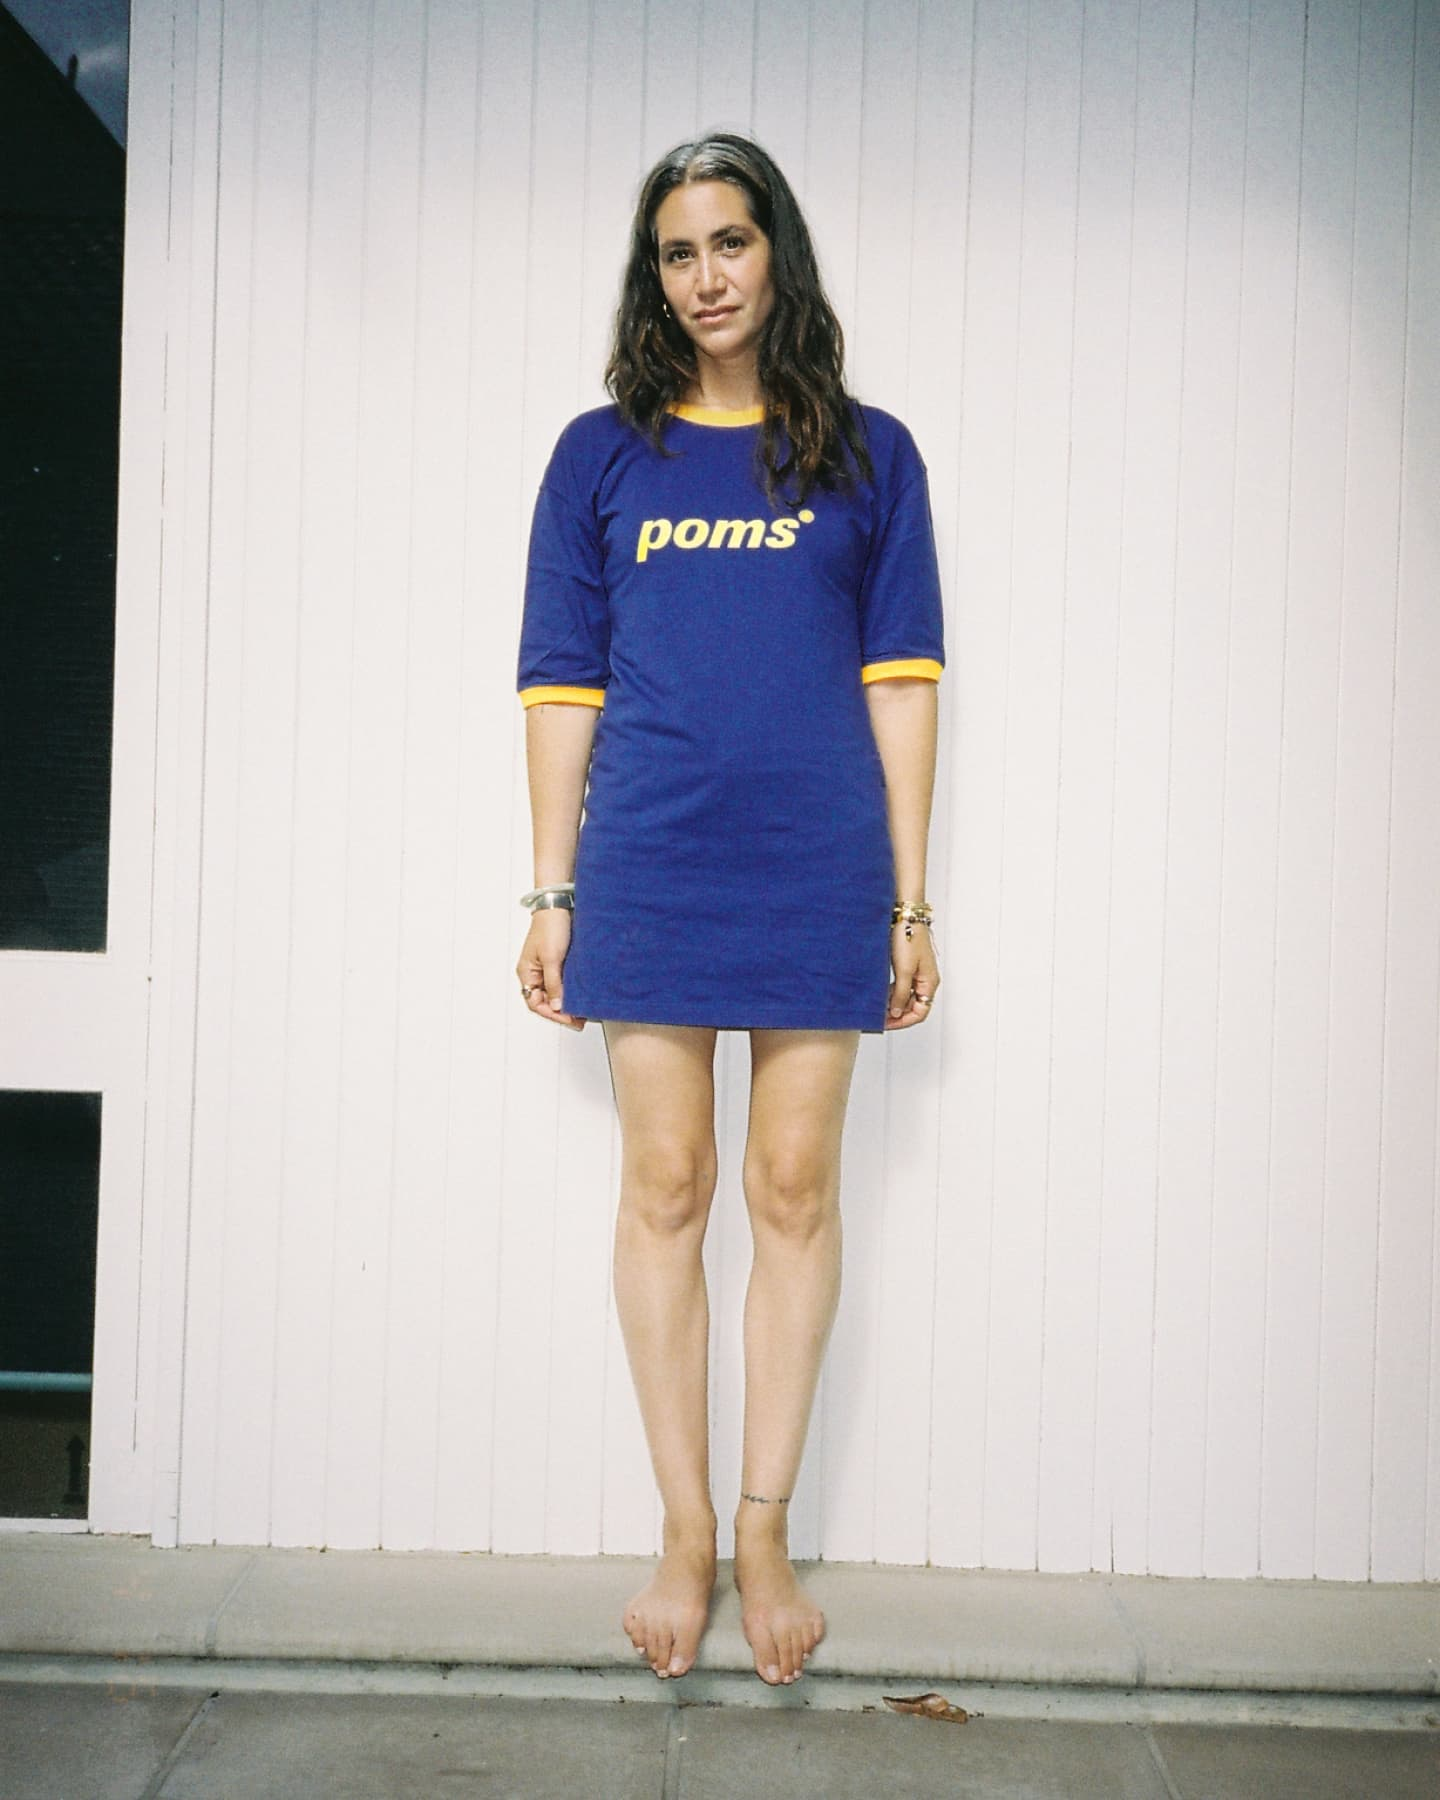 [PREORDER] POMS Ringer Dress - Royal Blue / Gold